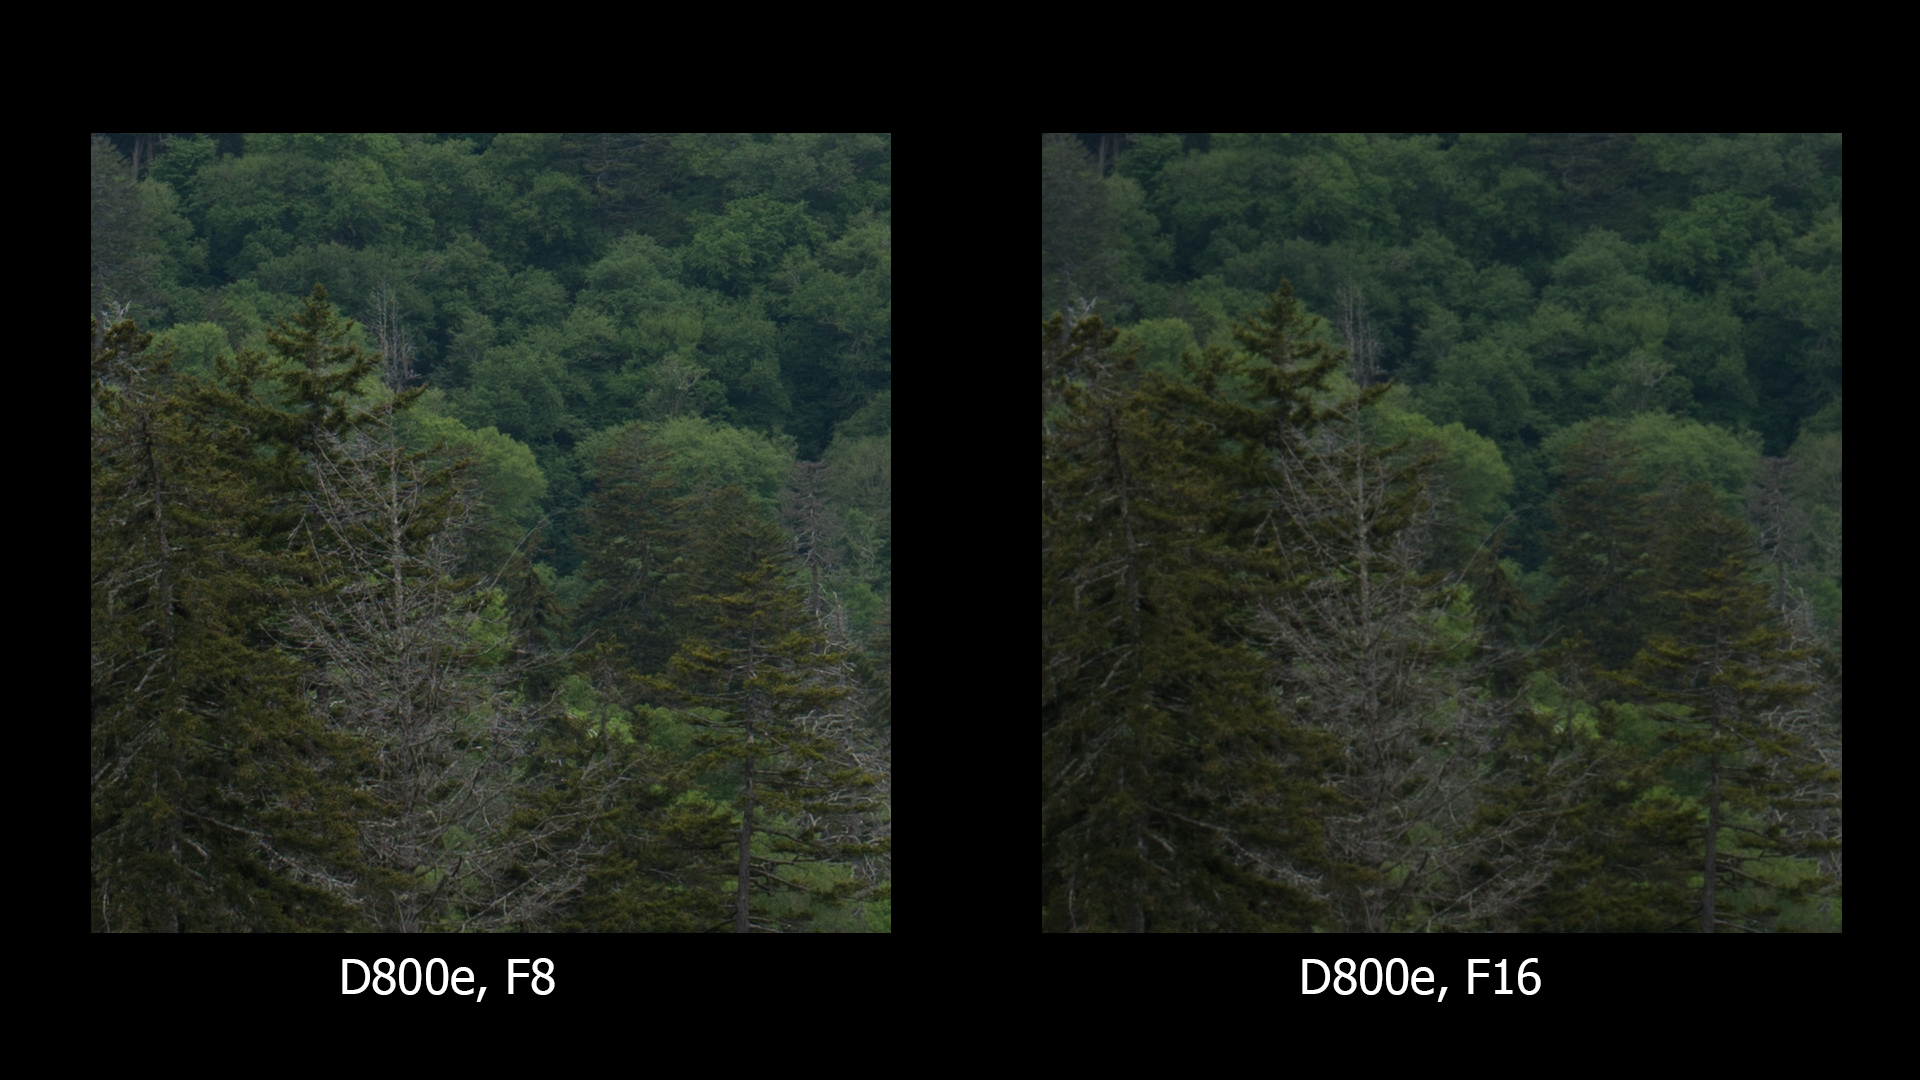 D800e, F8 and F16, no sharpening